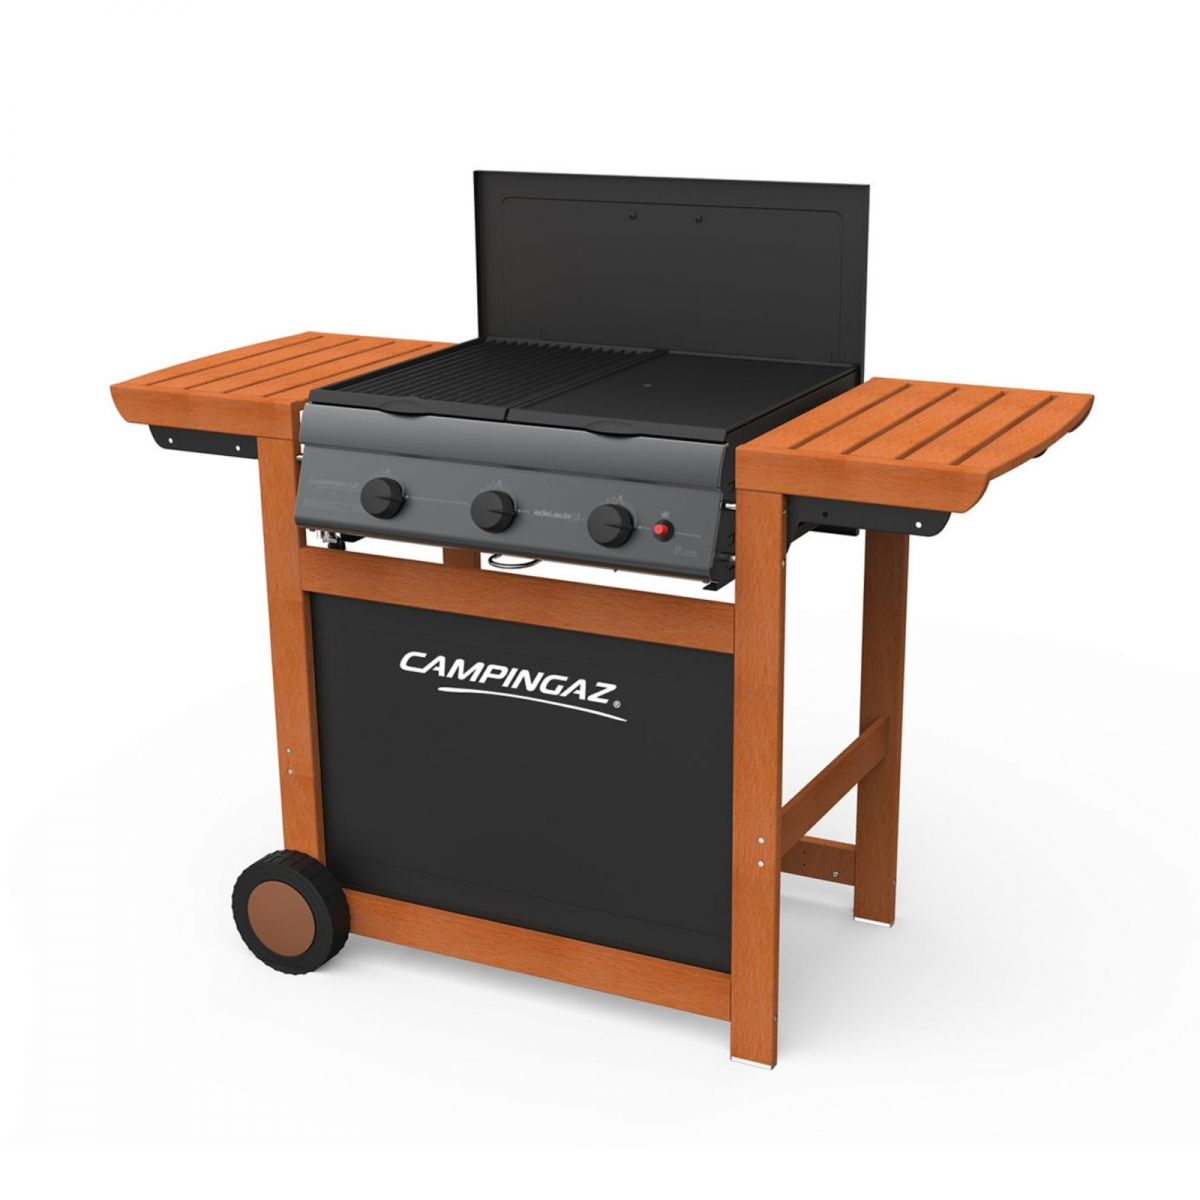 campingaz woody 3 adelaide barbecue a gas il mondo del barbecue. Black Bedroom Furniture Sets. Home Design Ideas